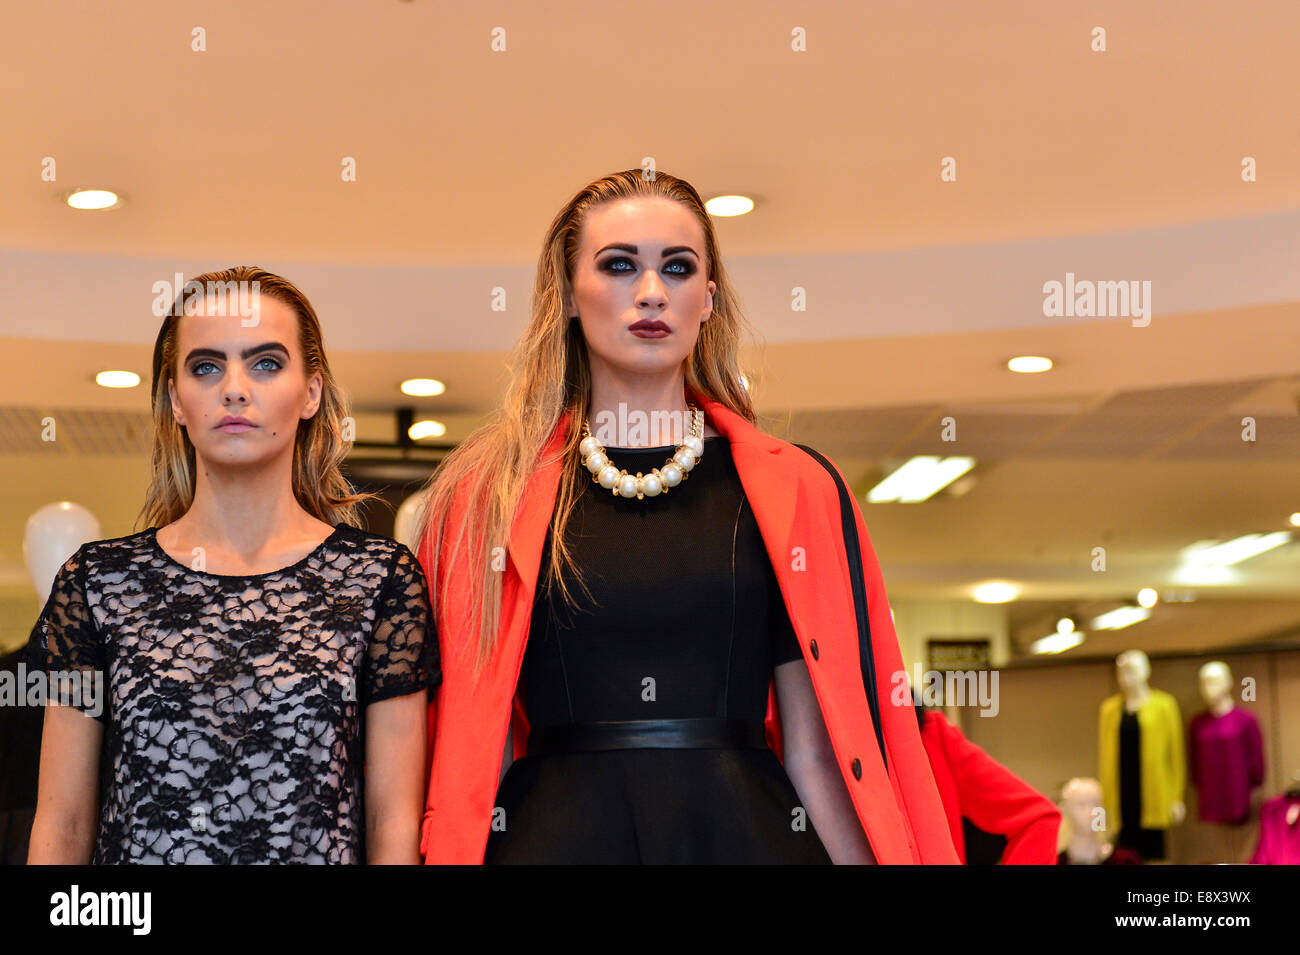 Stock Photo - Two women posing as live models in Dunnes Stores, Derry, Londonderry, Northern Ireland. ©George - Stock Image